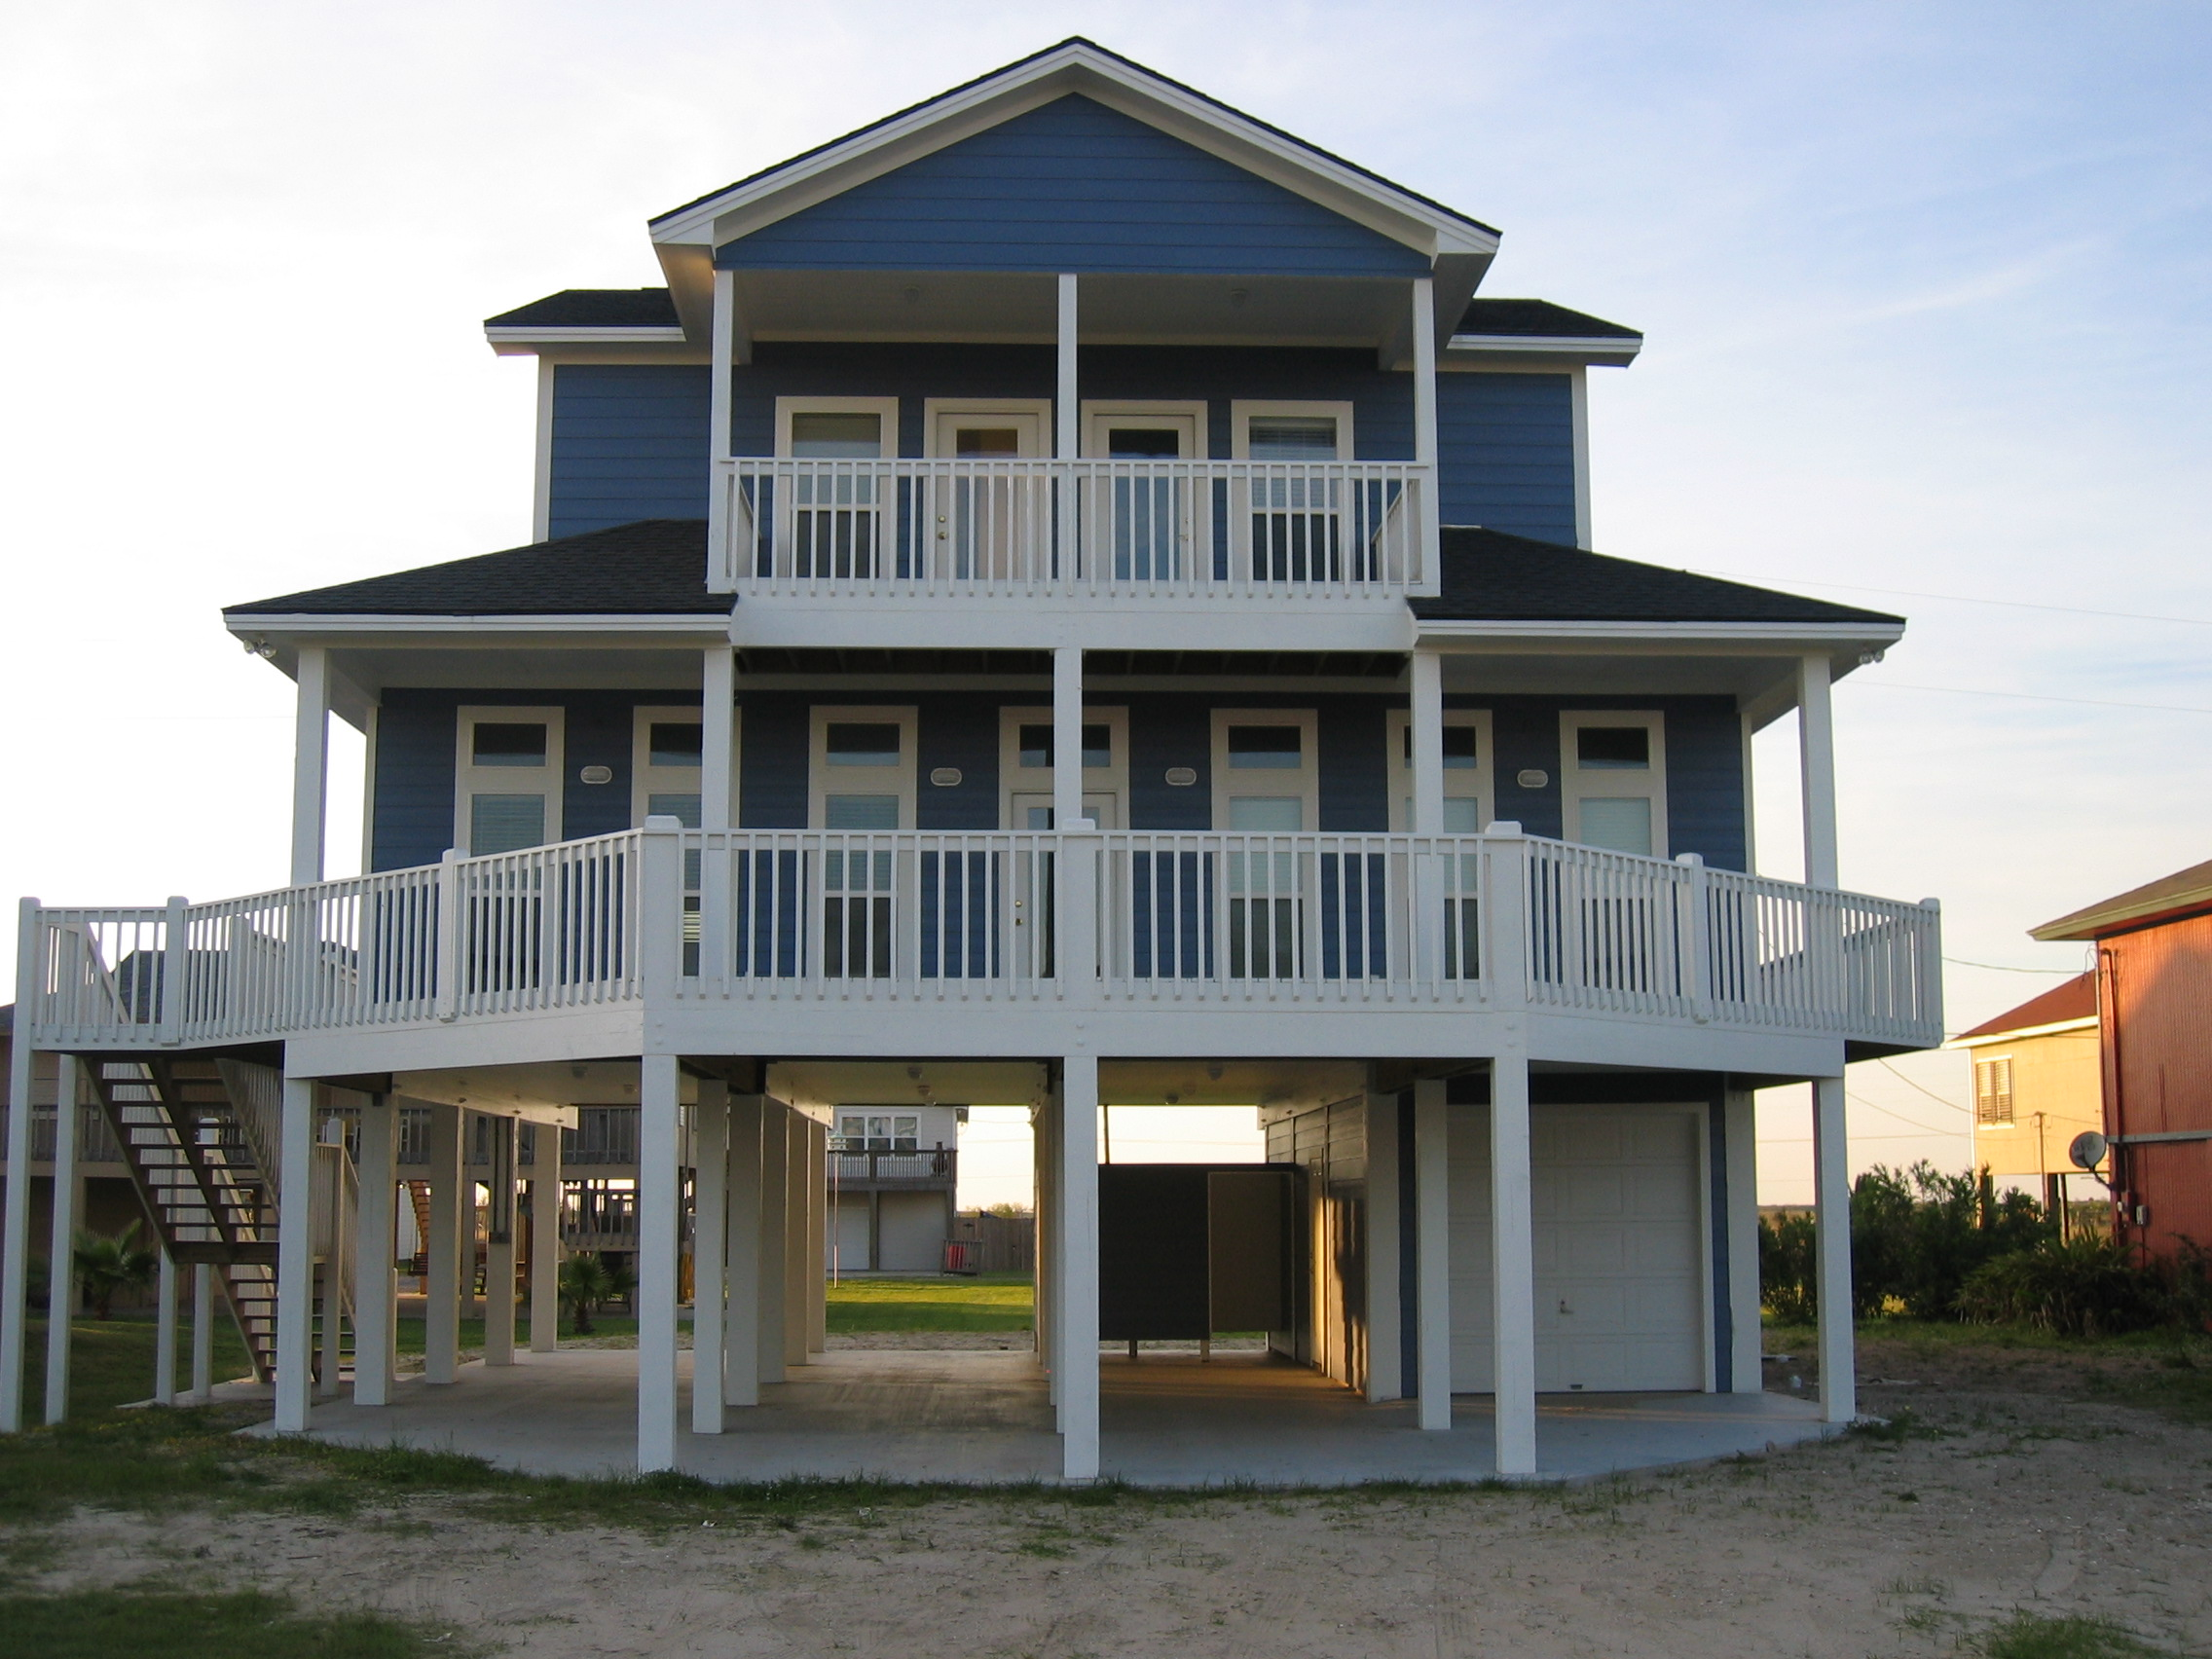 Modular home plans on pilings home design idea for Modular homes on pilings